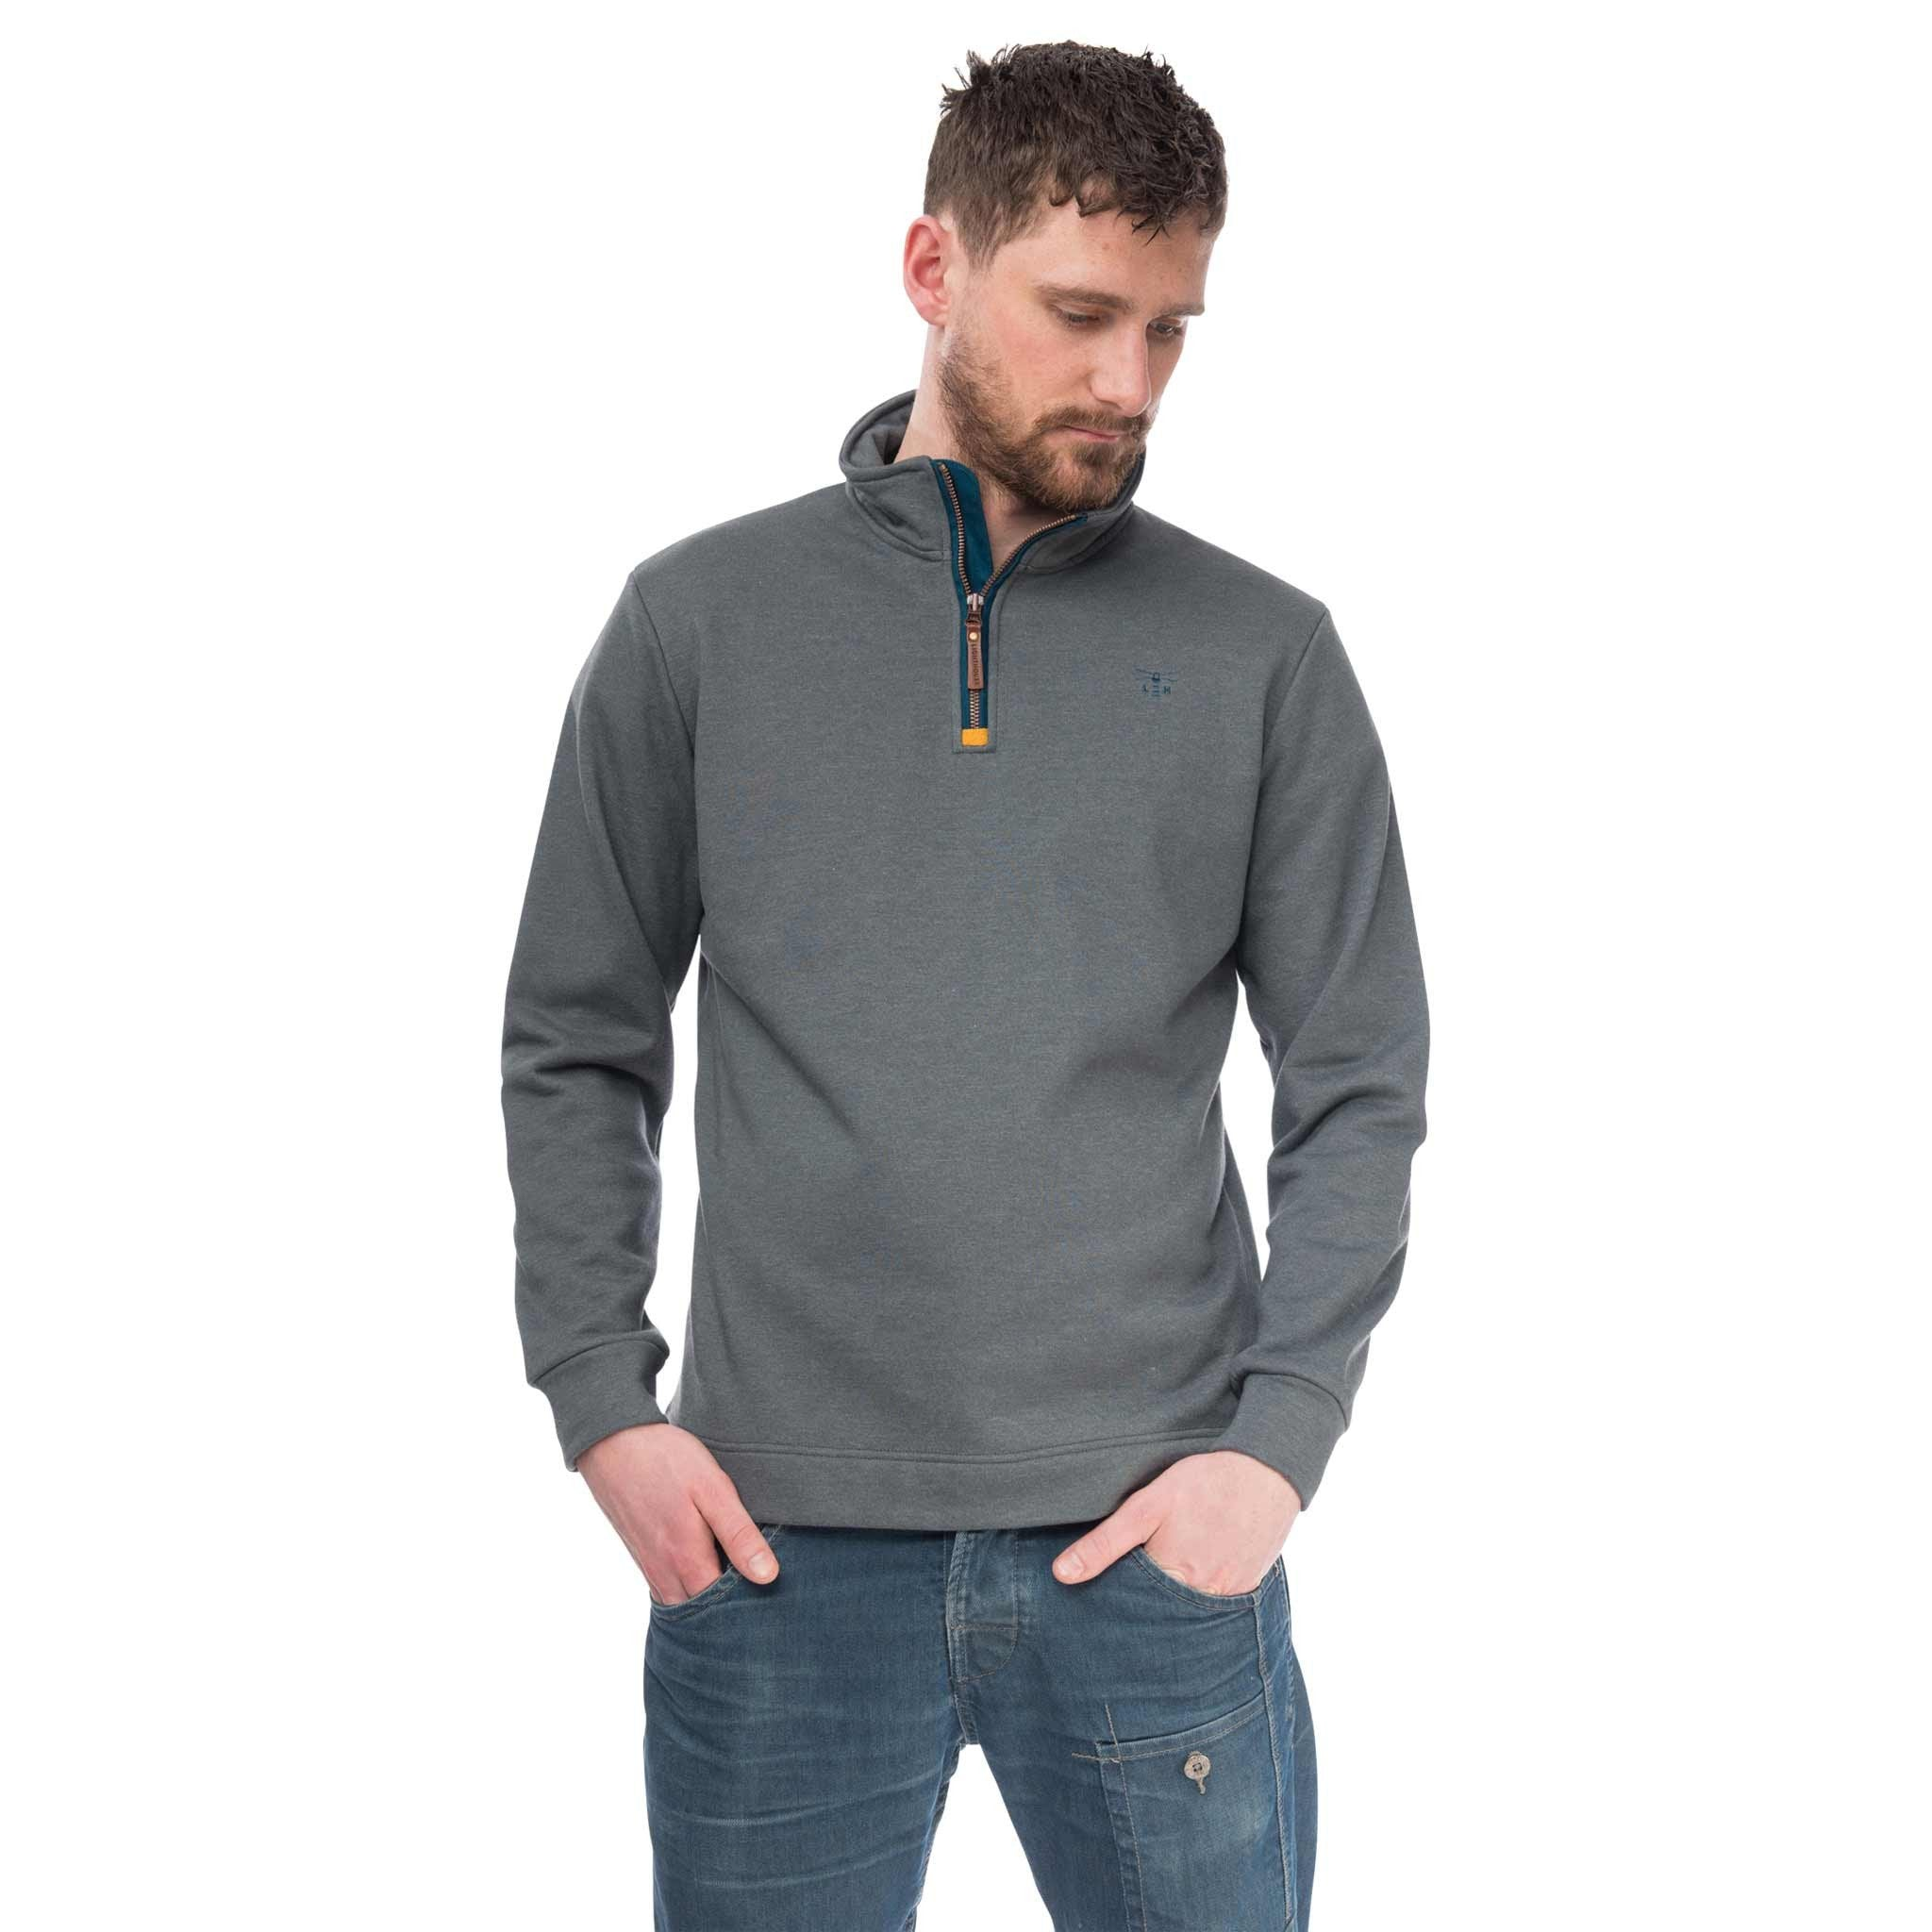 Seafarer Mens Half Zip Sweater in Grey Marl, Modelled Front View | Lighthouse